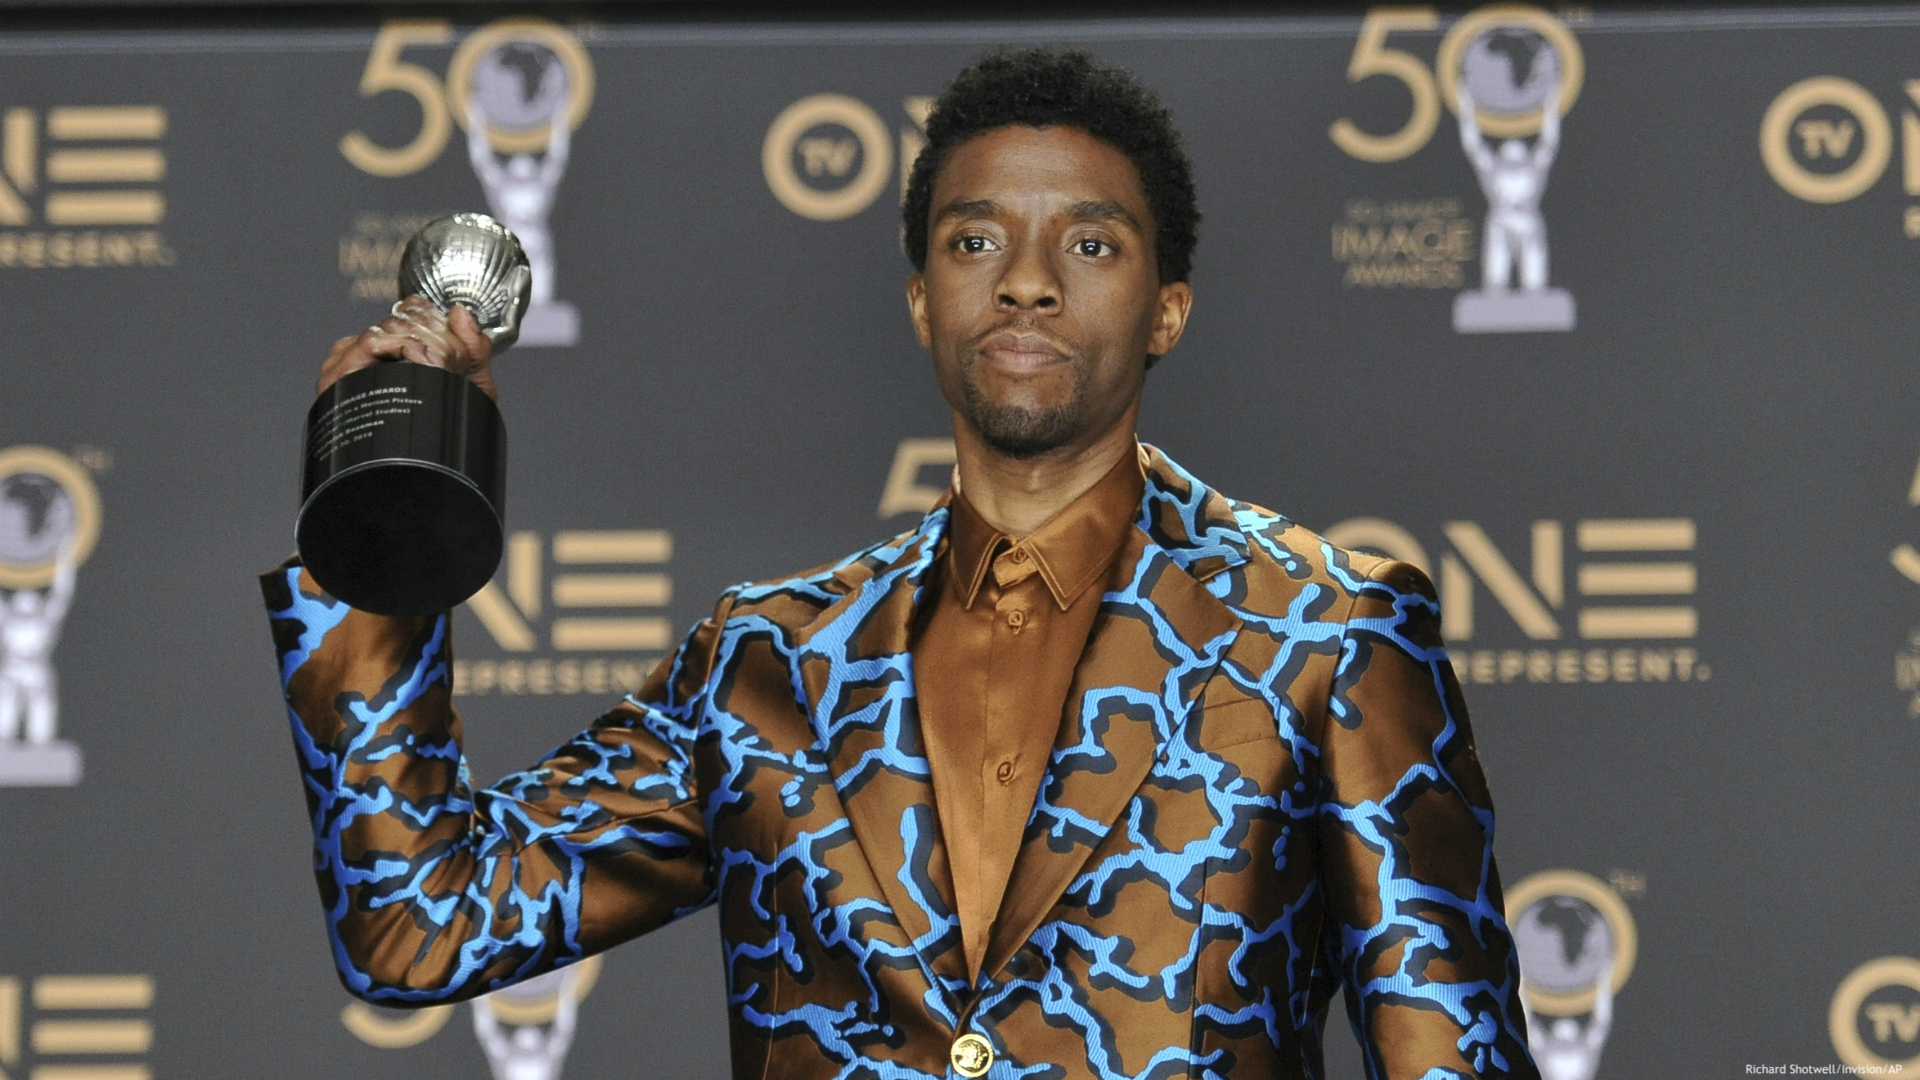 """In this Saturday, March 30, 2019 file photo, Chadwick Boseman poses in the press room with the award for outstanding actor in a motion picture for """"Black Panther"""" at the 50th annual NAACP Image Awards at the Dolby Theatre in Los Angeles. Actor Chadwick Boseman, who played Black icons Jackie Robinson and James Brown before finding fame as the regal Black Panther in the Marvel cinematic universe, has died of cancer. His representative says Boseman died Friday, Aug. 28, 2020 in Los Angeles after a four-year battle with colon cancer. He was 43. (Photo by Richard Shotwell/Invision/AP, File)"""